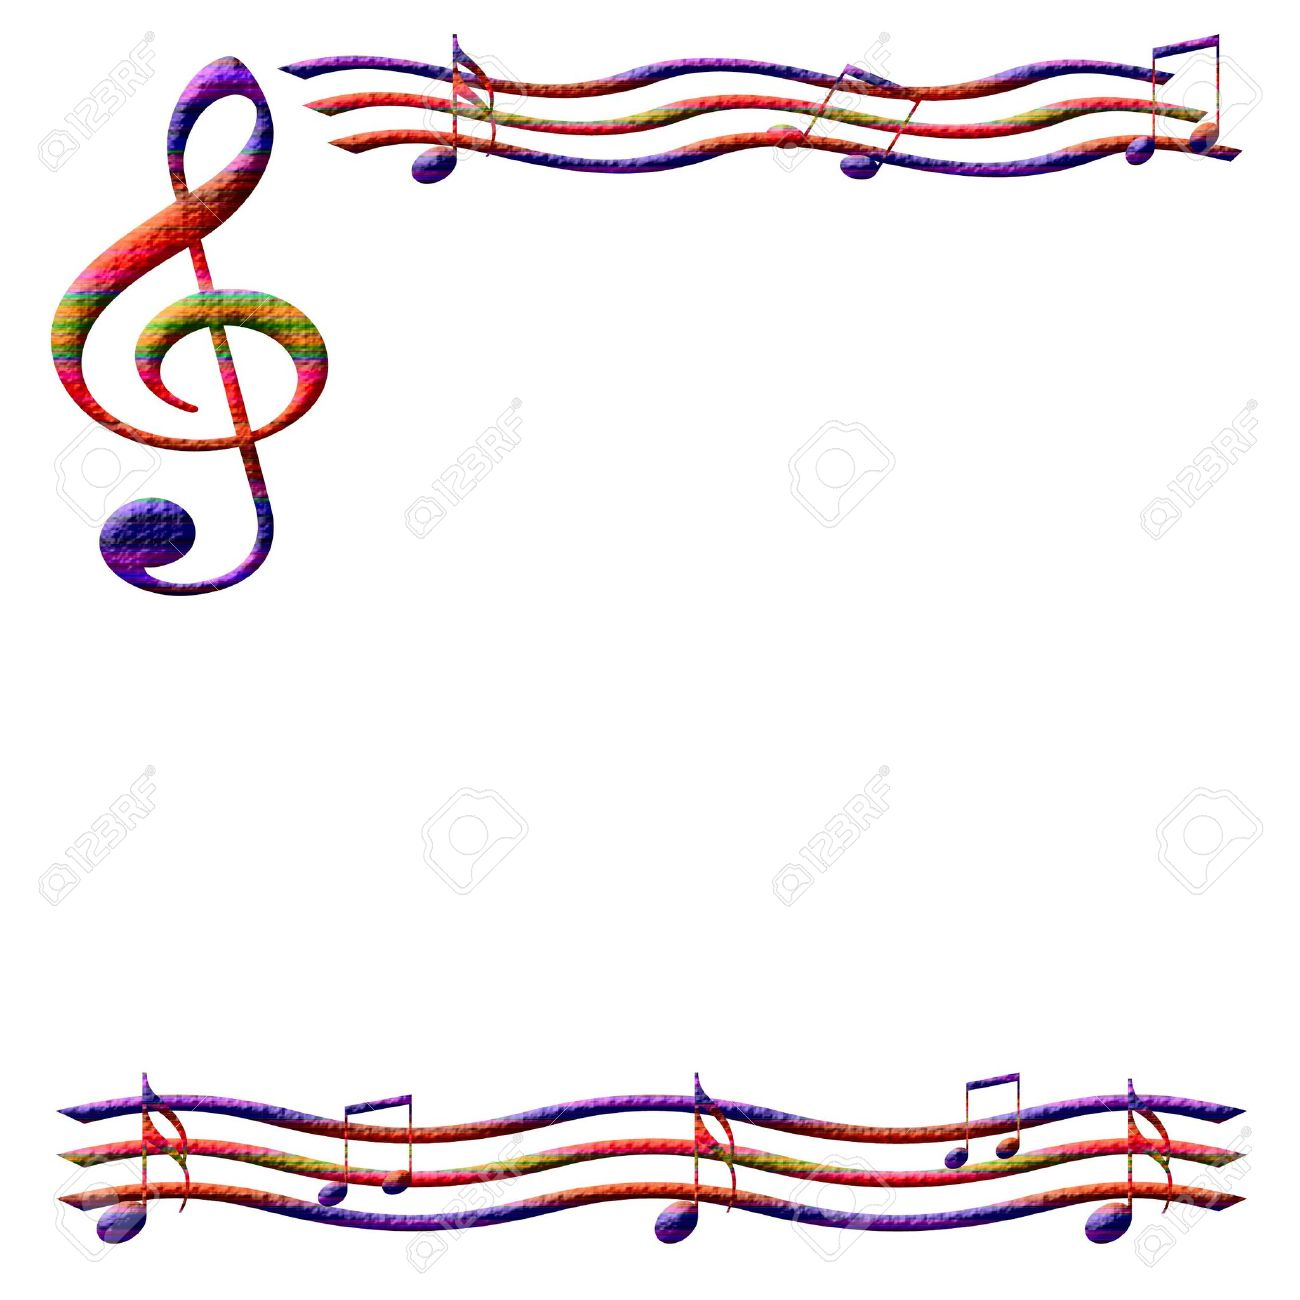 Colorful Music Notes Frame On White Background Illustrated Stock ...